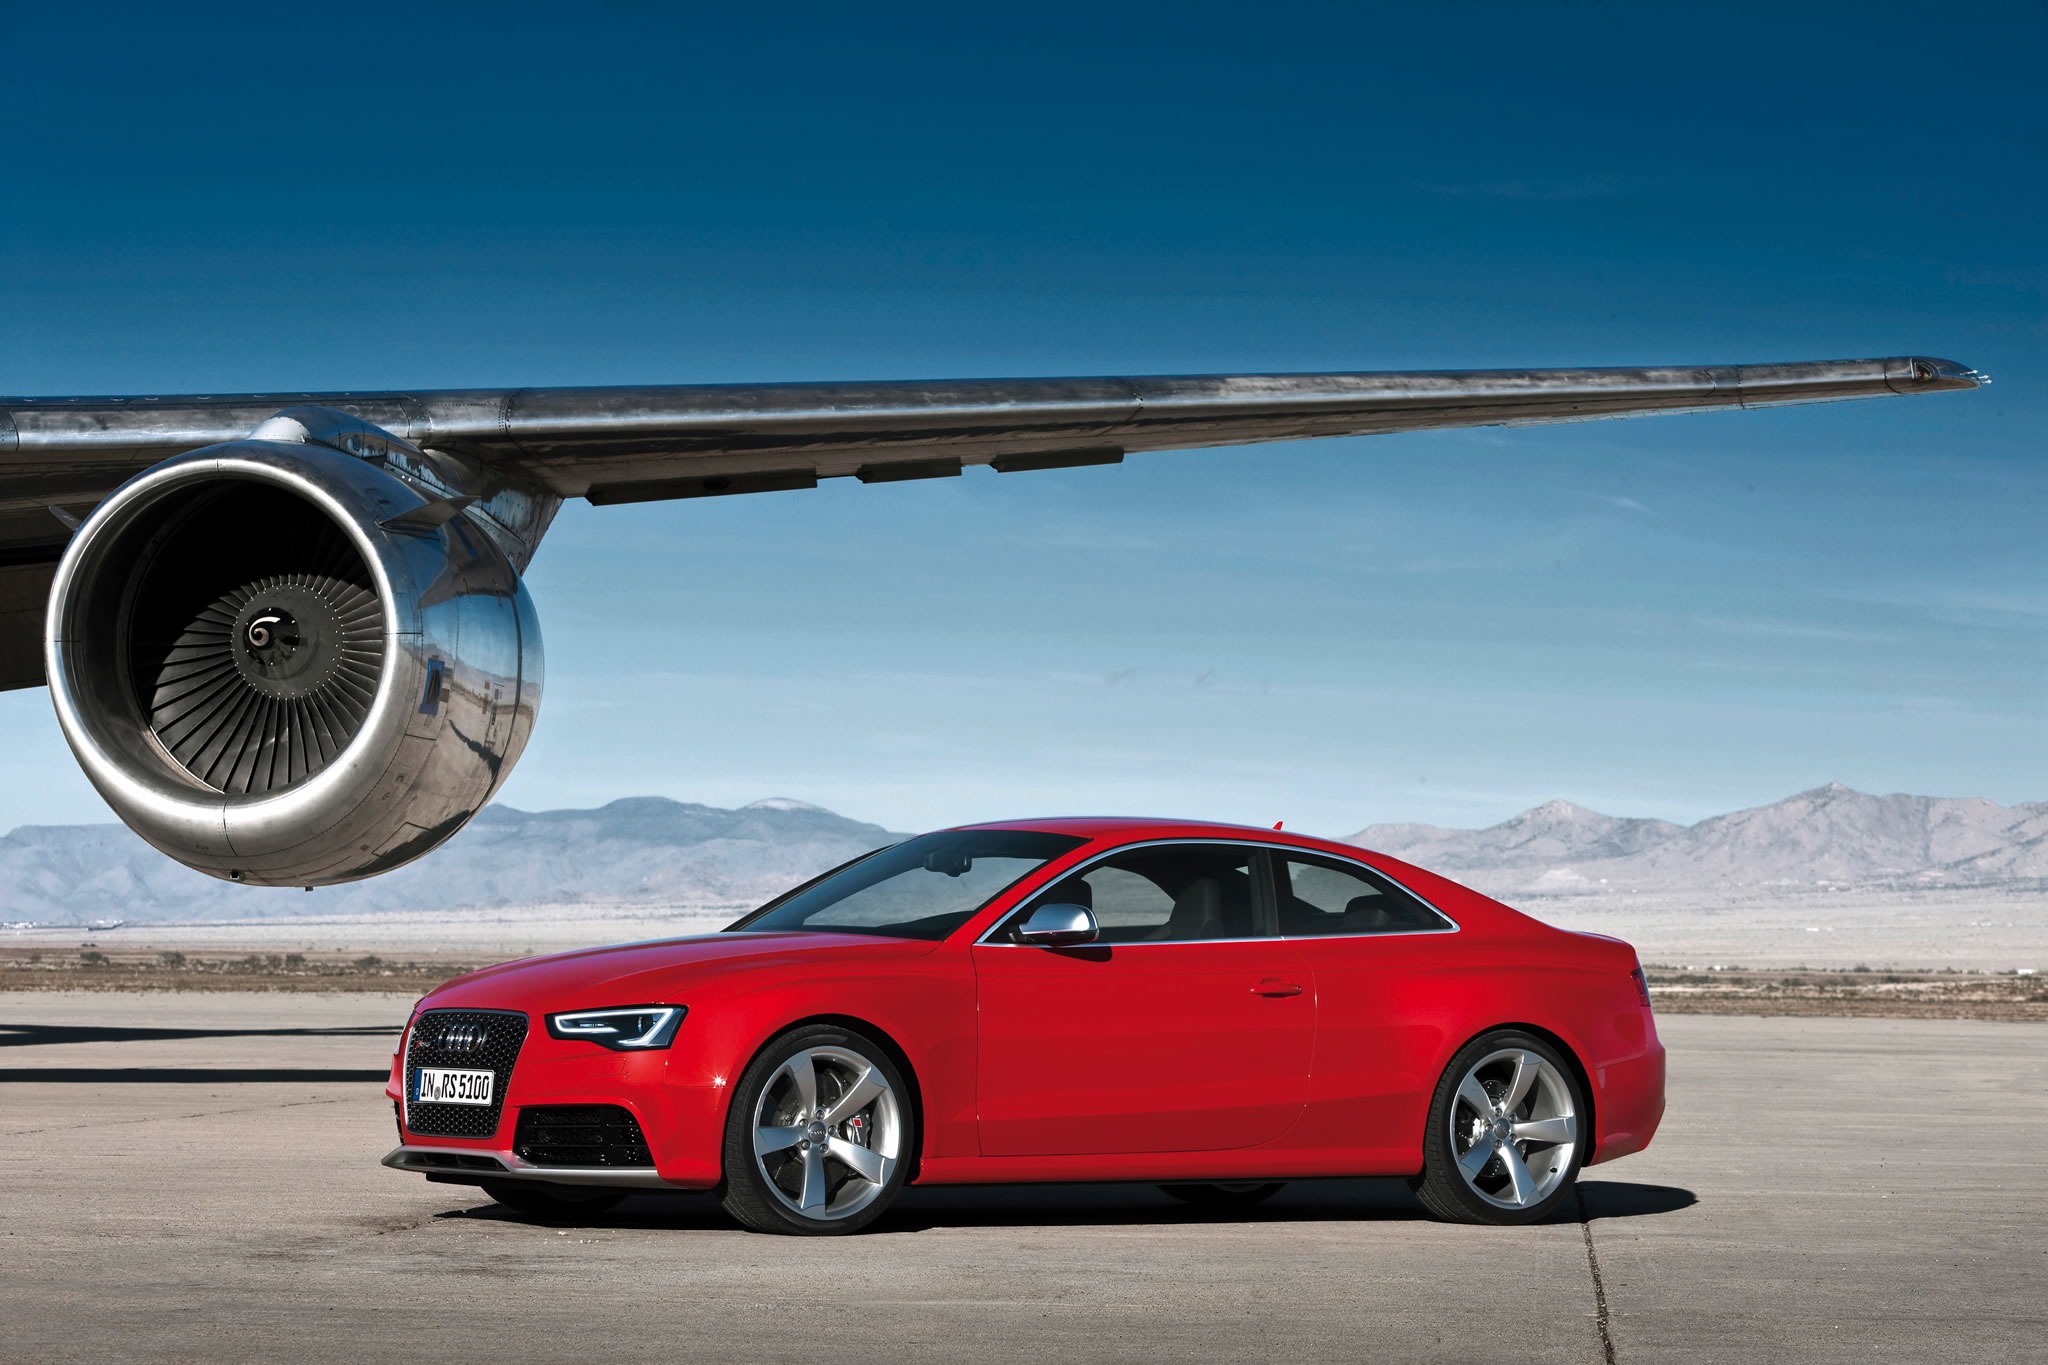 2014 audi rs 5 coupe front photo misano red color airplane wing size 2048 x 1365 nr 20 49. Black Bedroom Furniture Sets. Home Design Ideas